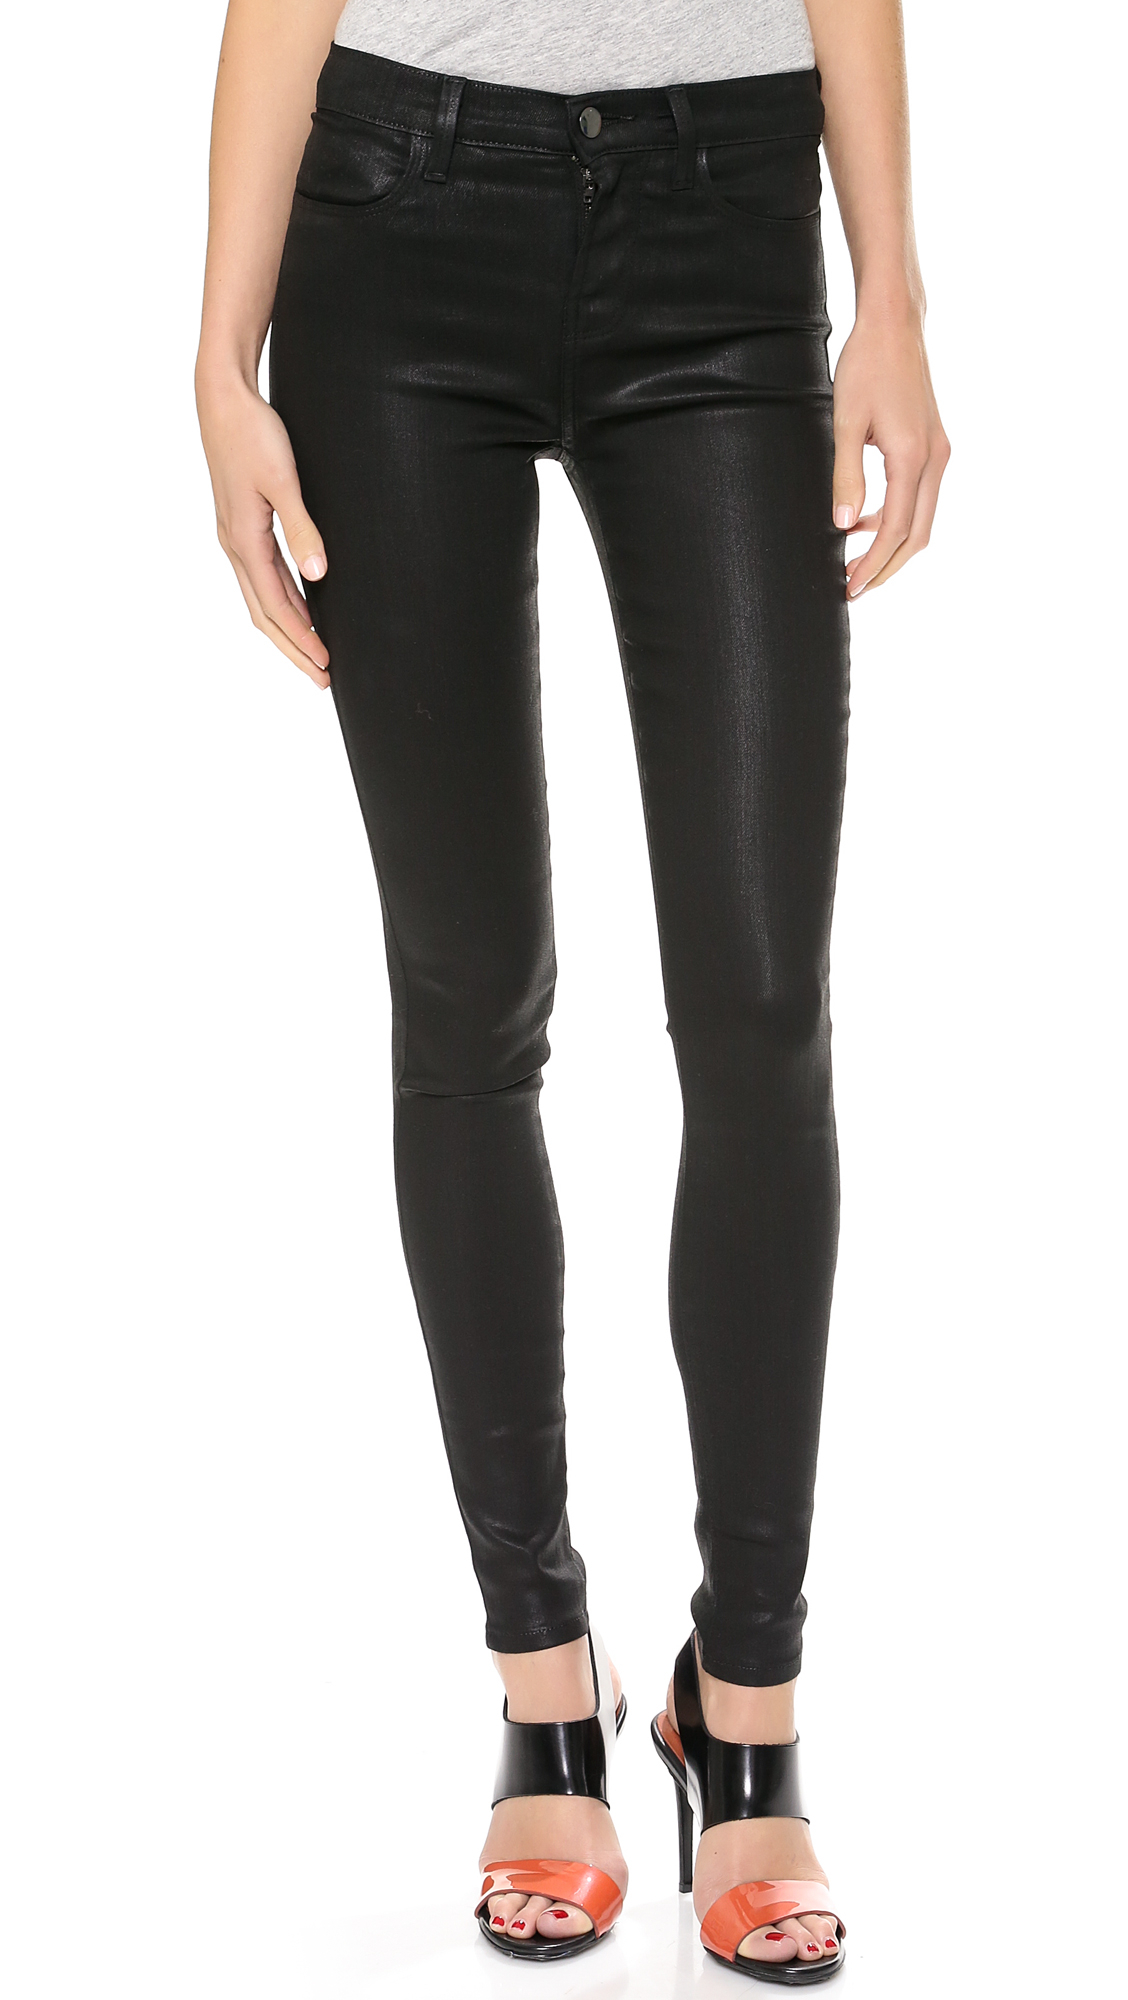 9cbffbe8eae5 J Brand 23110 High Rise Coated Jeans - Fearless in Black - Lyst